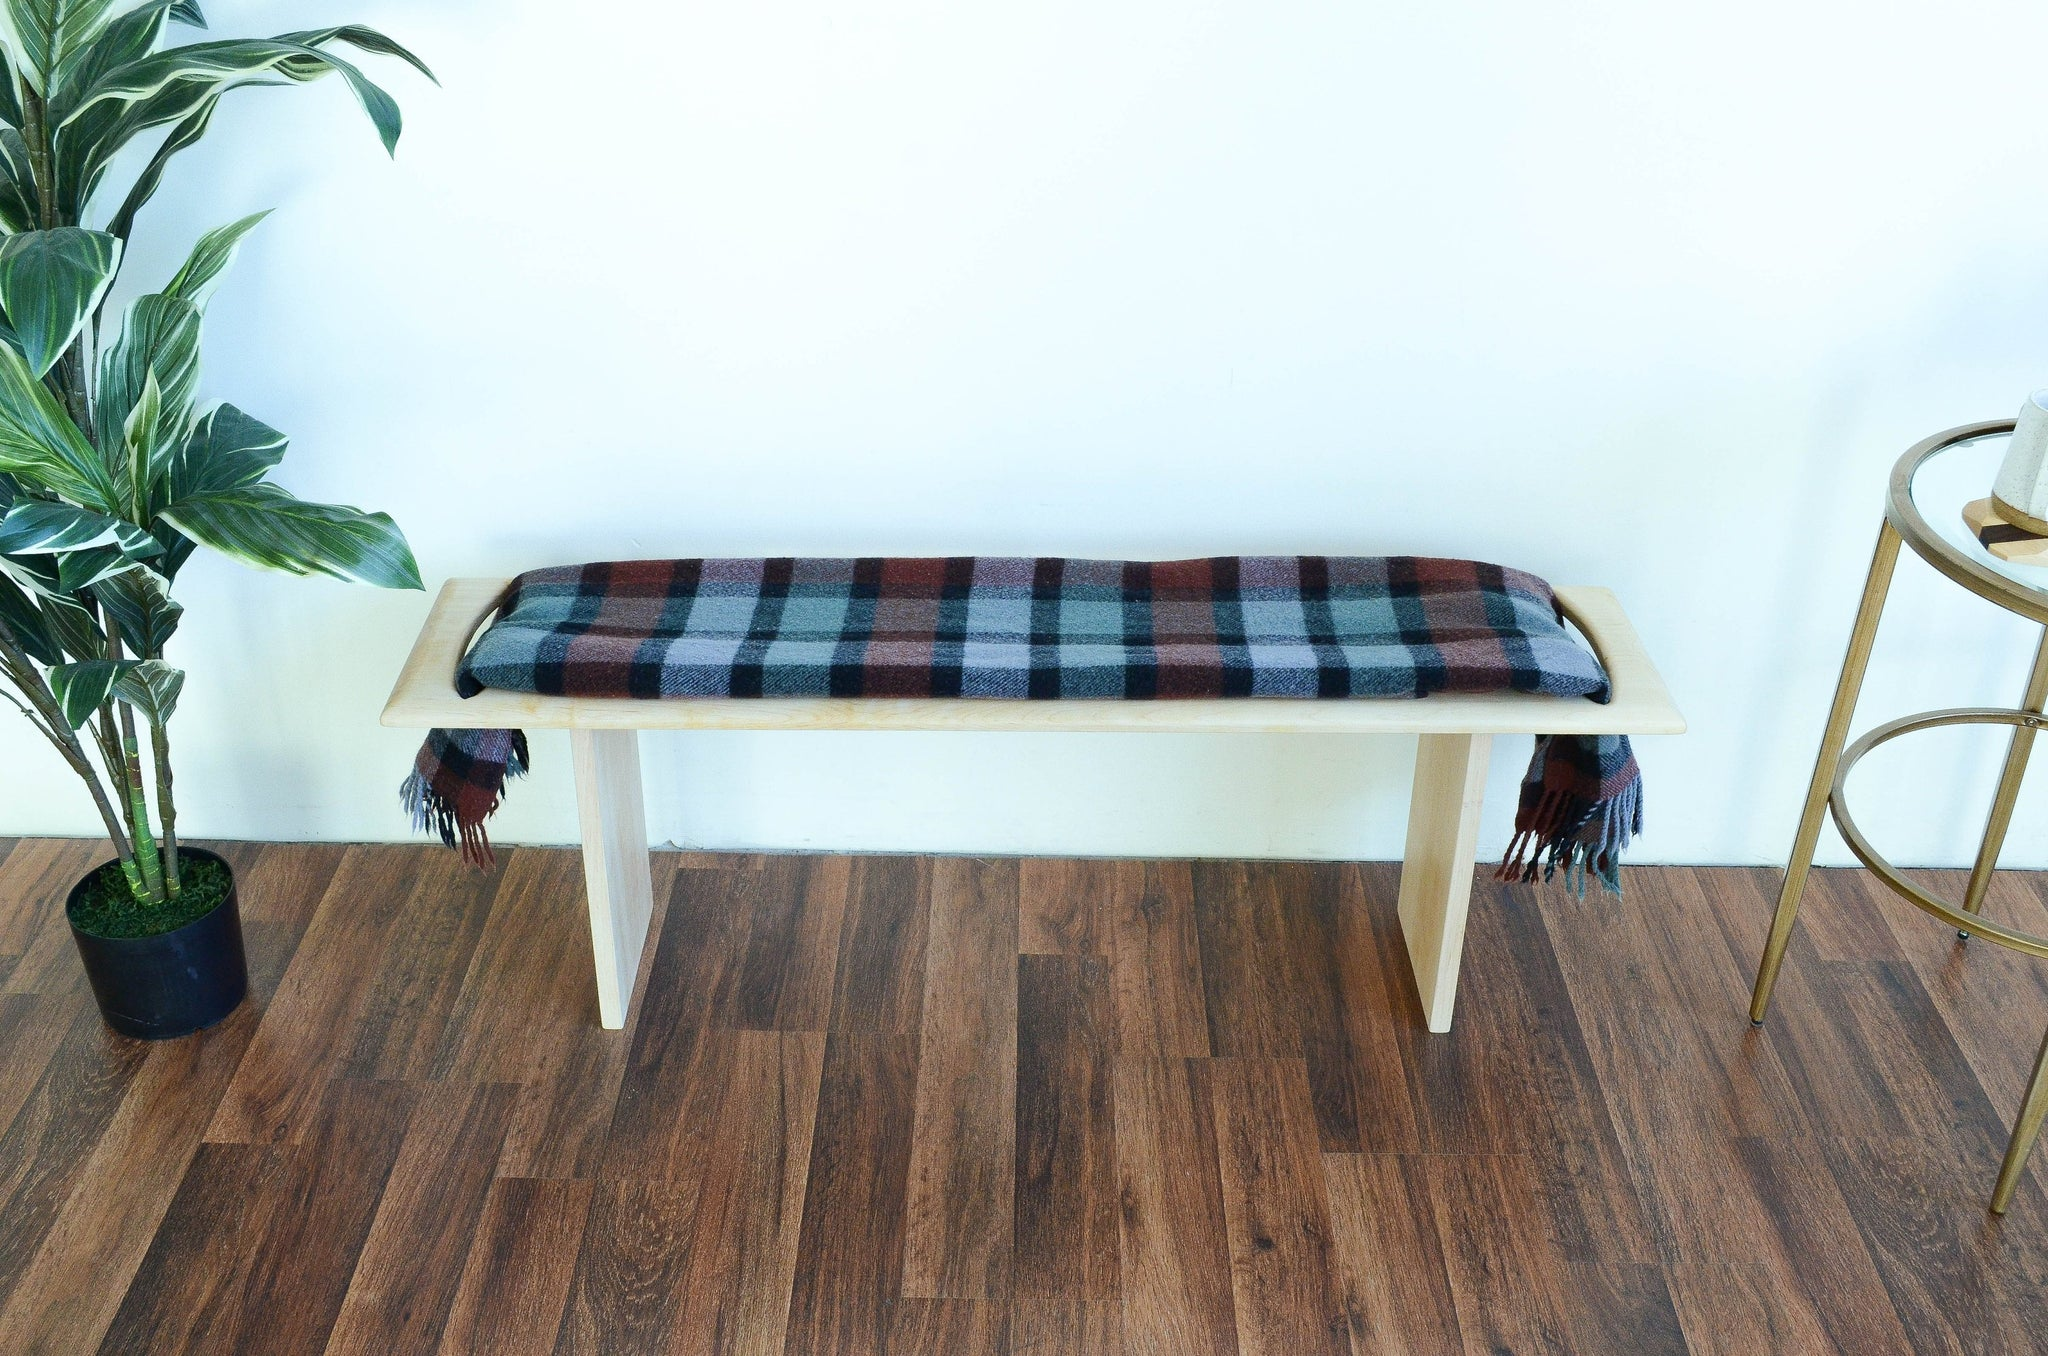 Sensational Blanket Wood Bench 11Th Lane Home Furnishings Machost Co Dining Chair Design Ideas Machostcouk